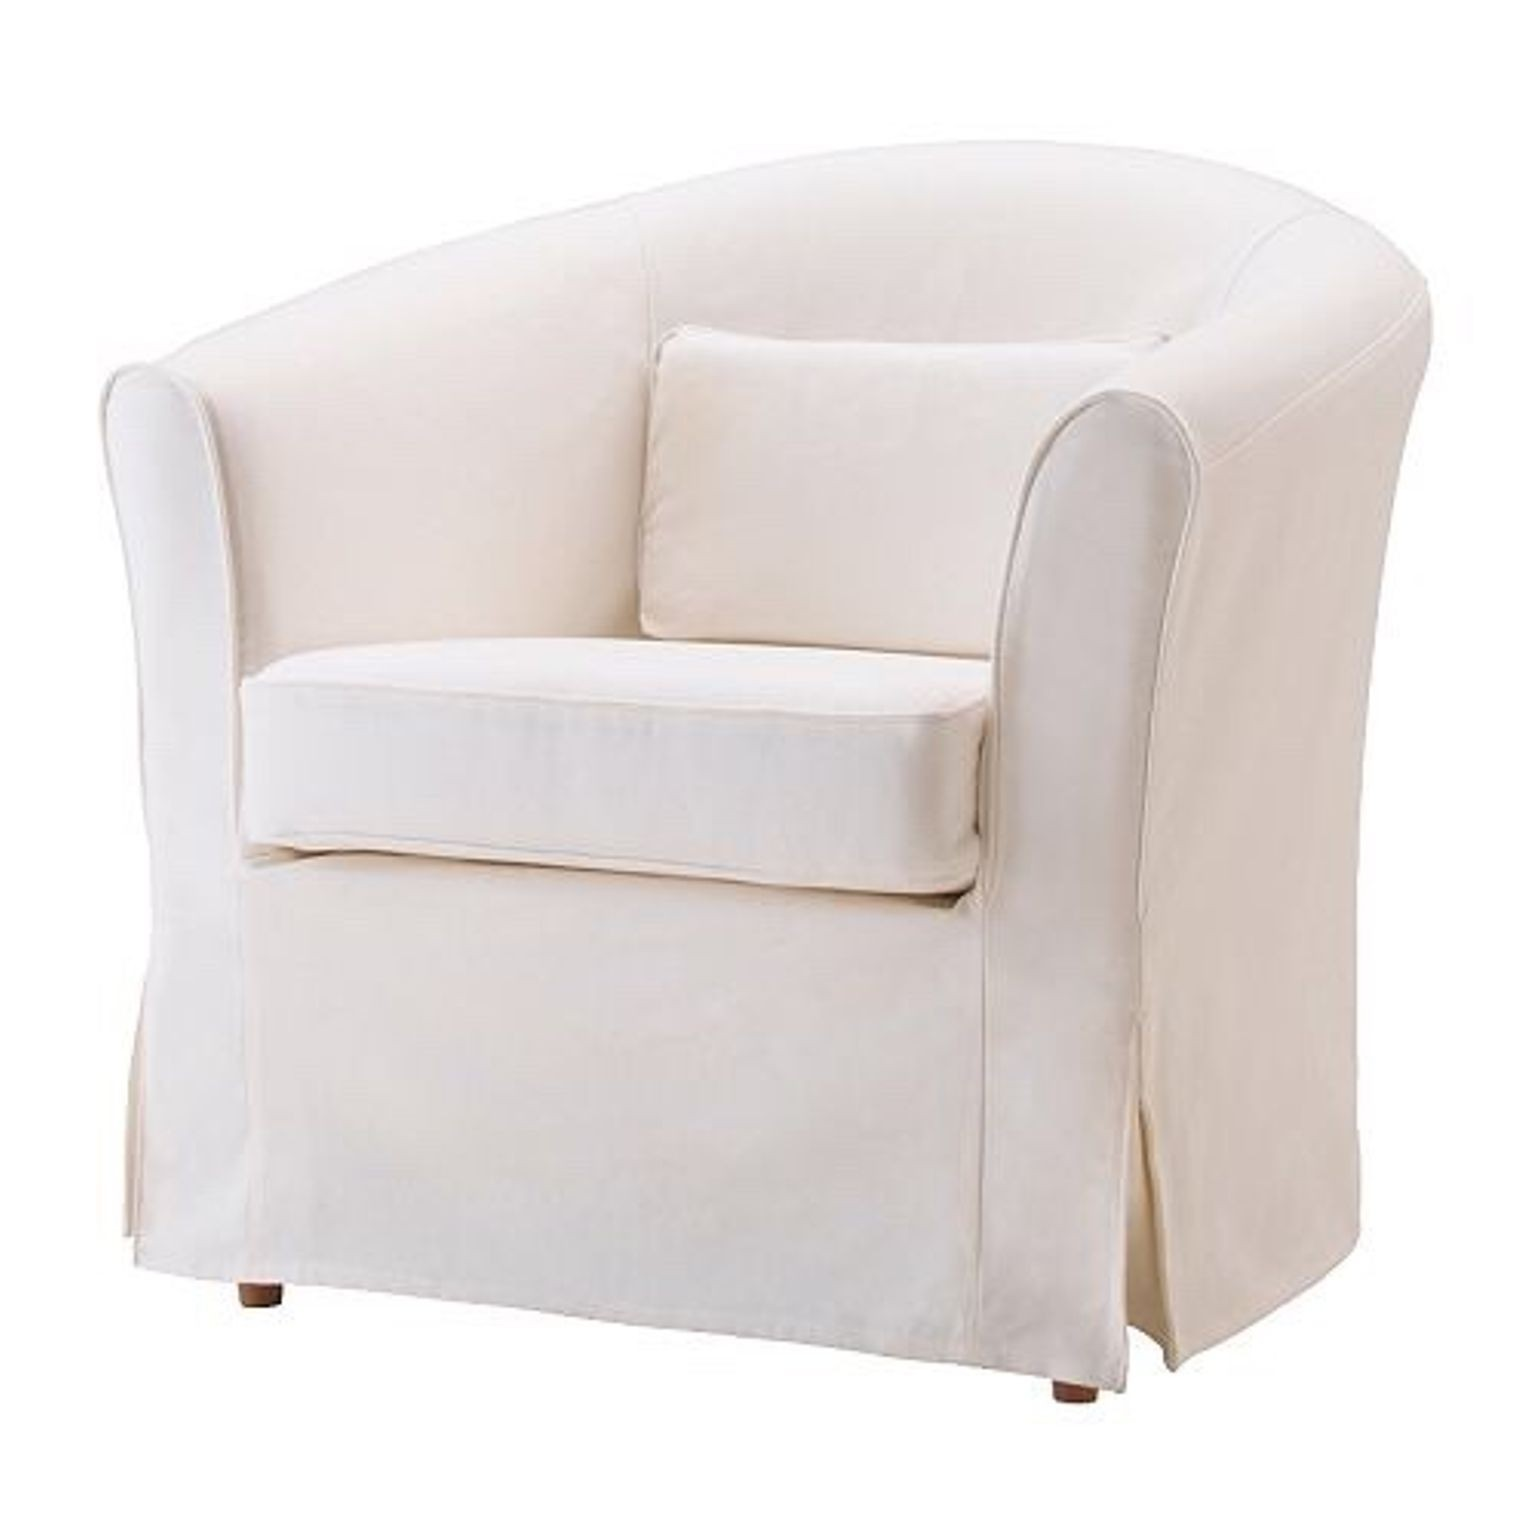 Superieur Overstuffed Chair Covers